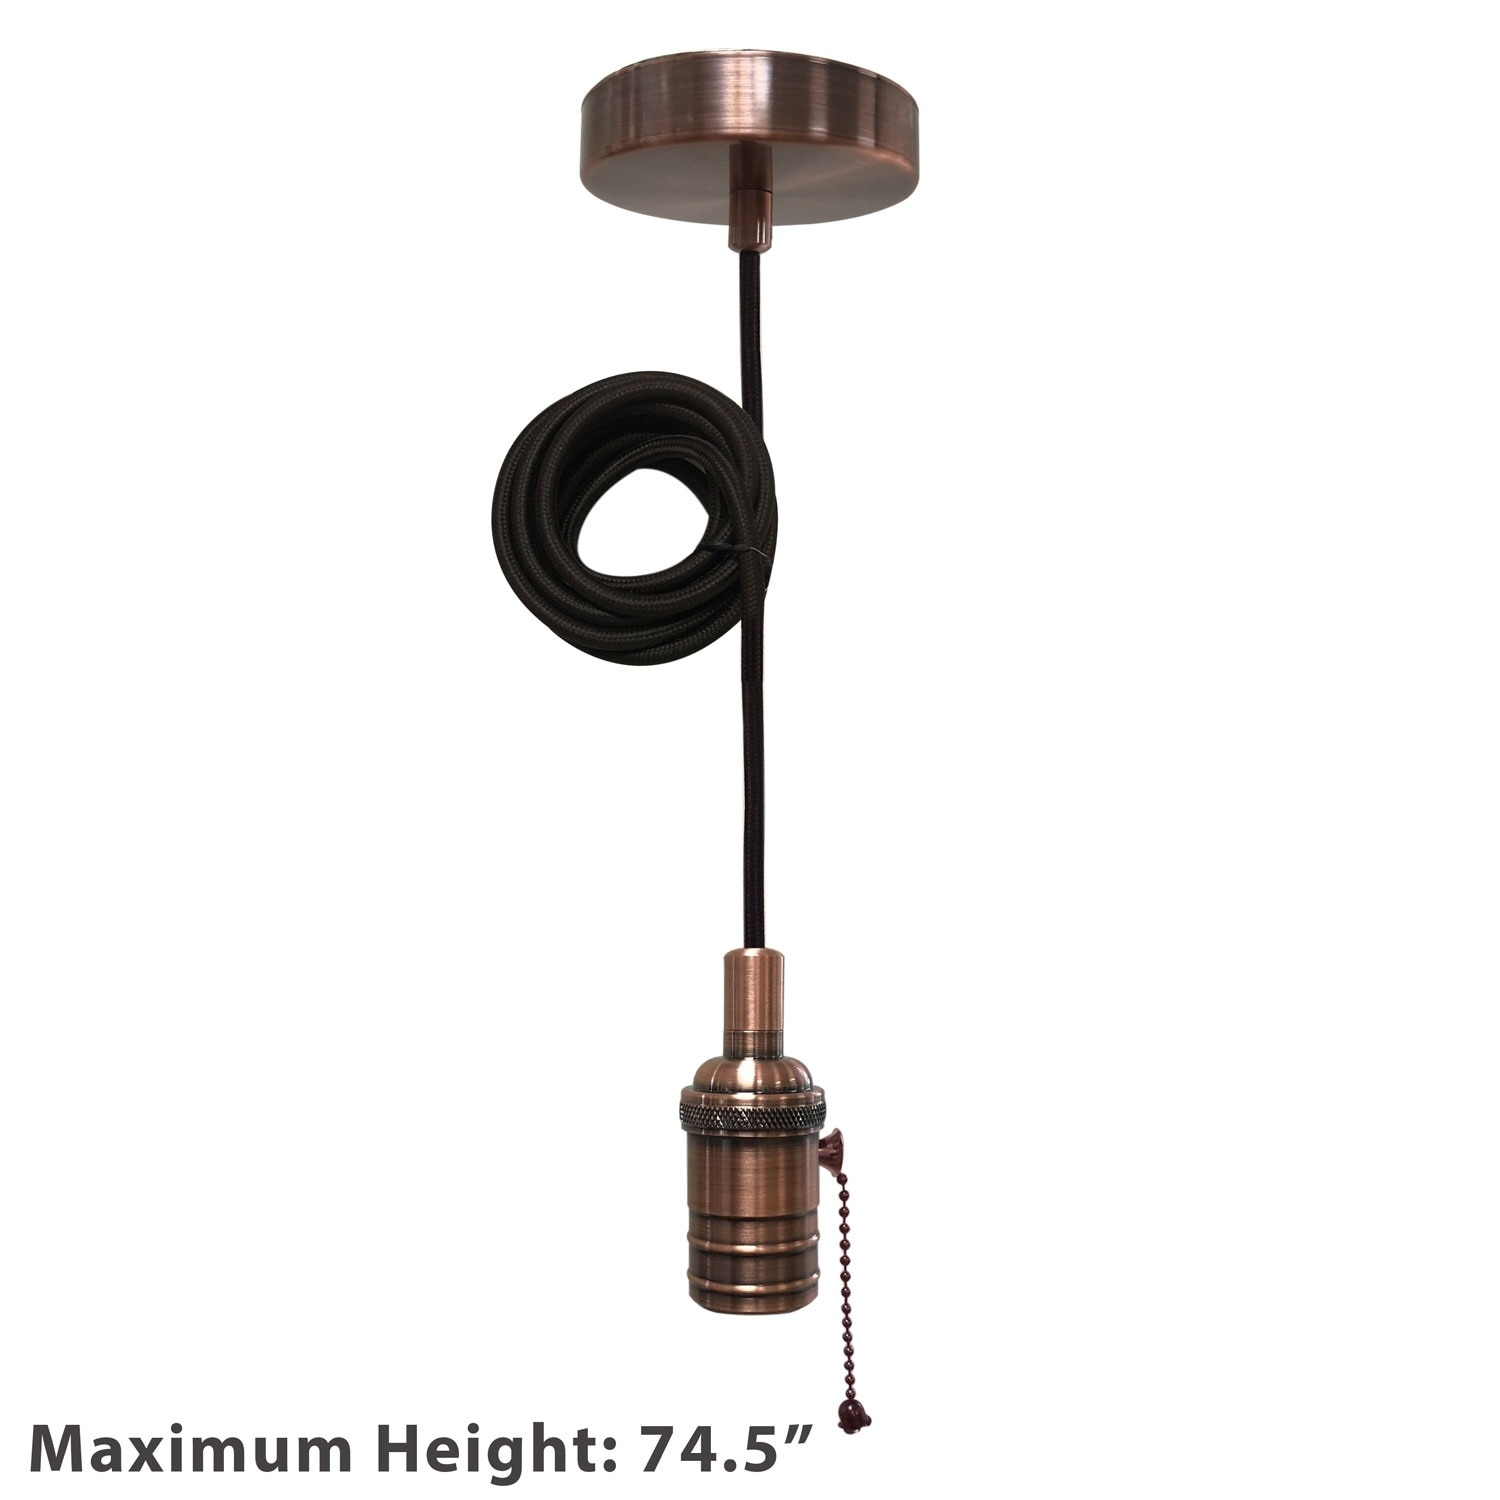 Shop Black Friday Deals On Style Antique Copper Pull Chain Pendant Light Socket And Canopy On Sale Overstock 29147229